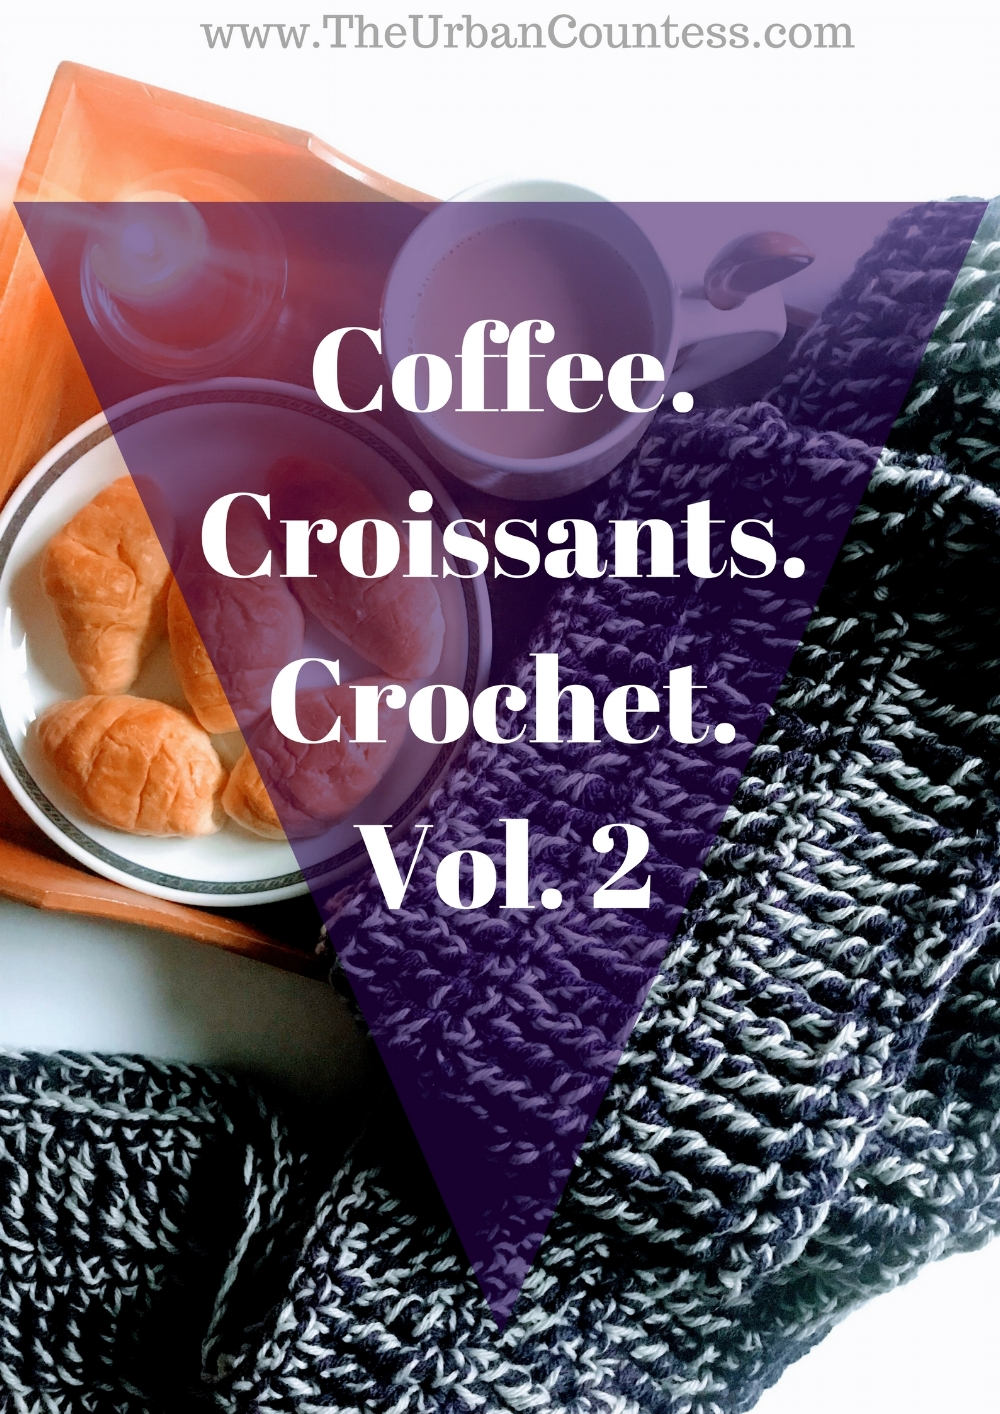 Let's sit and talk with coffee, croissants, and some crochet! | www.TheUrbanCountess.com